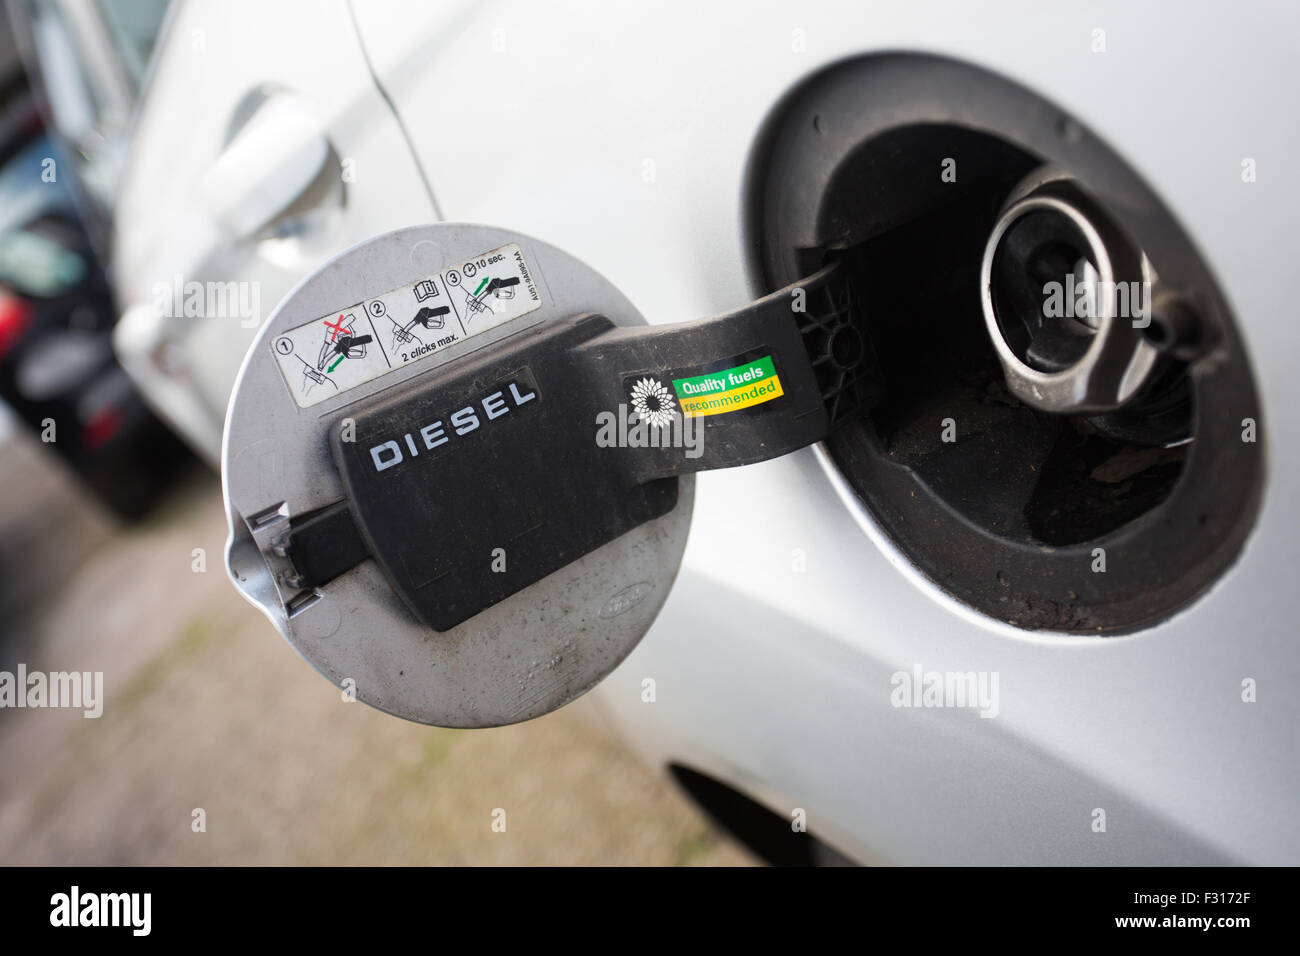 view of diesel fuel tank on car - Stock Image